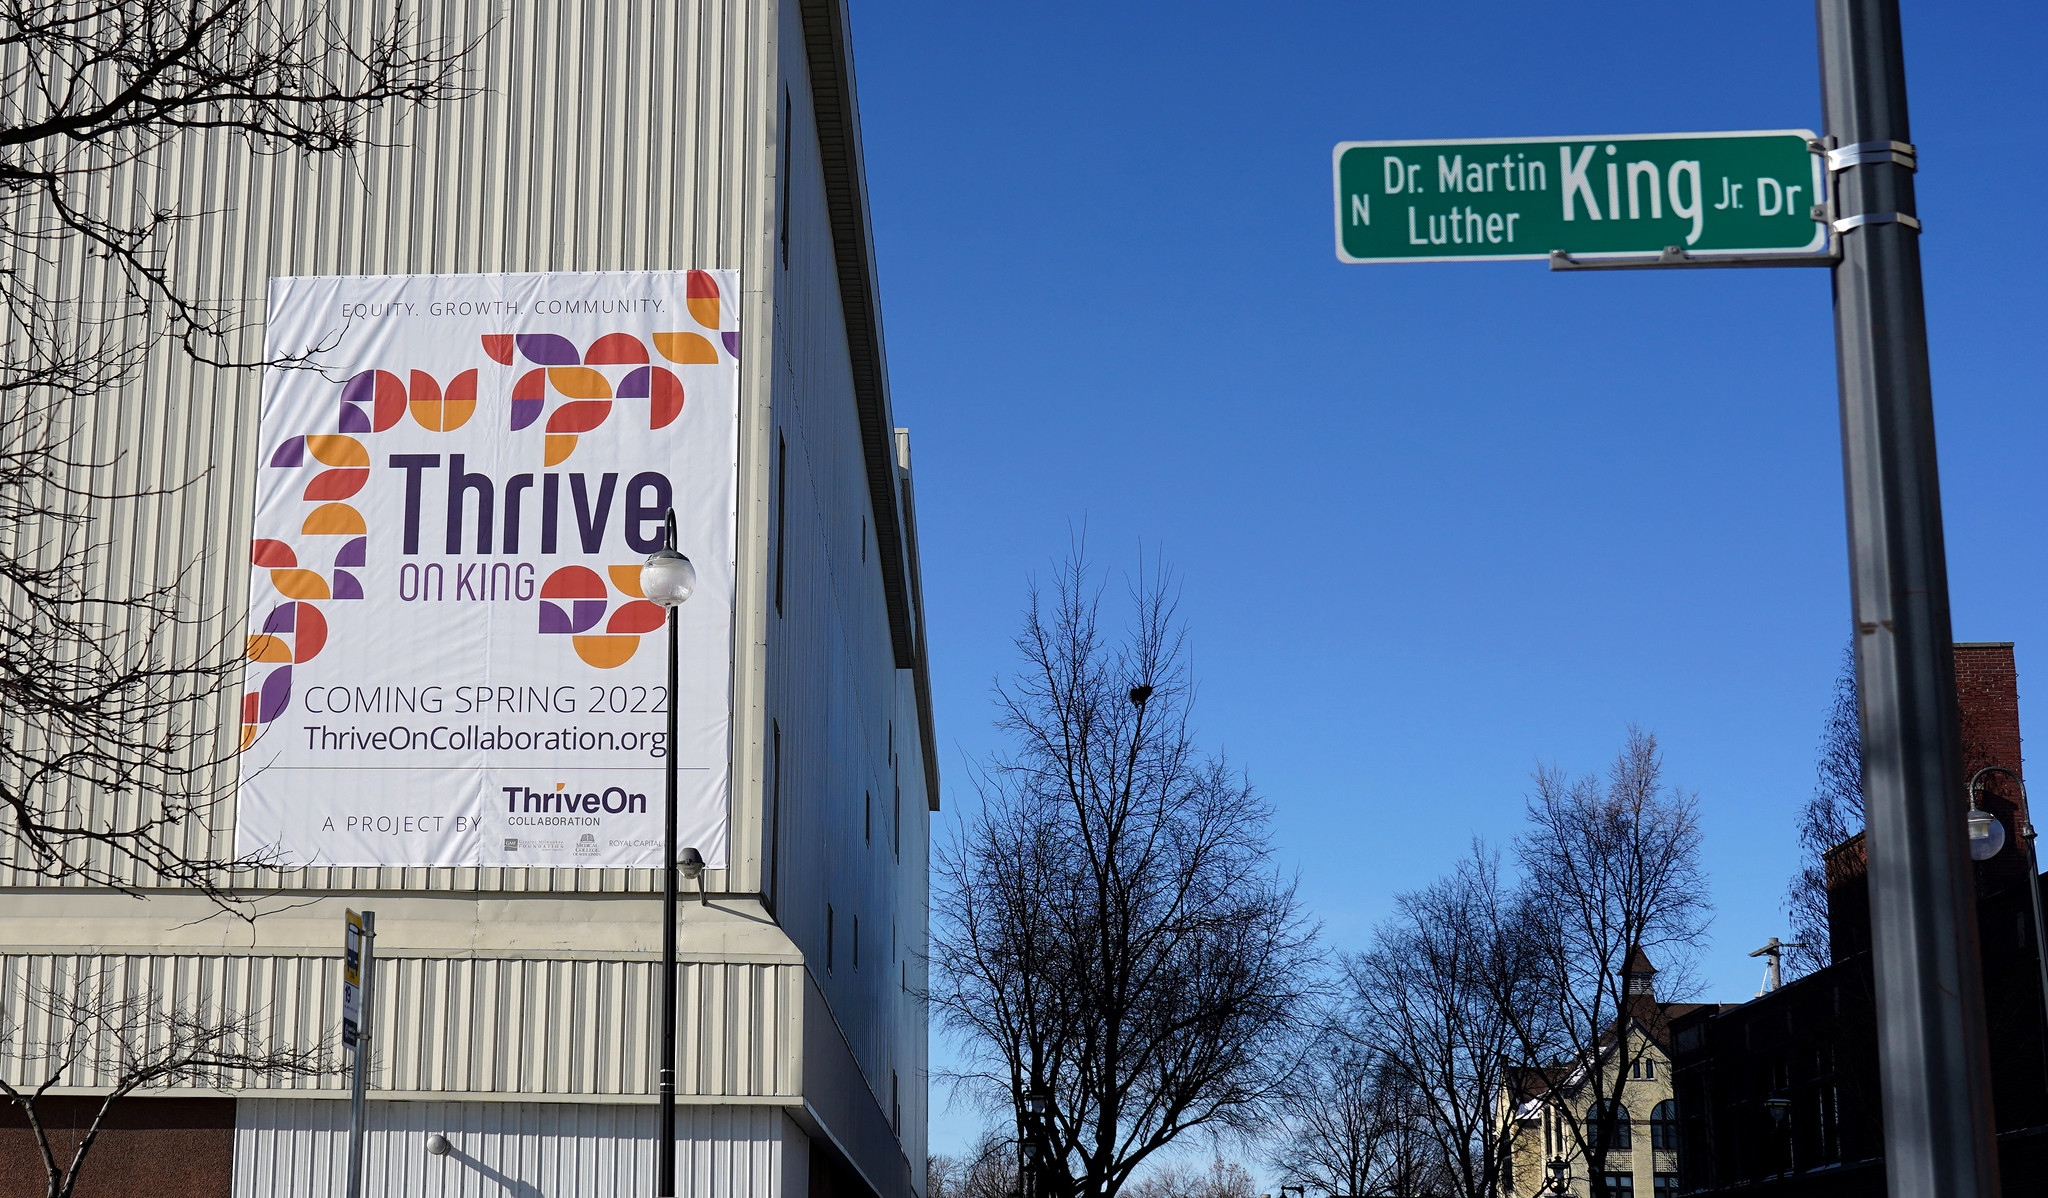 COVID-19 has complicated the start date of the project, but the ThriveOn Collaboration hopes to begin renovating sometime this spring. Photo provided by the Greater Milwaukee Foundation.